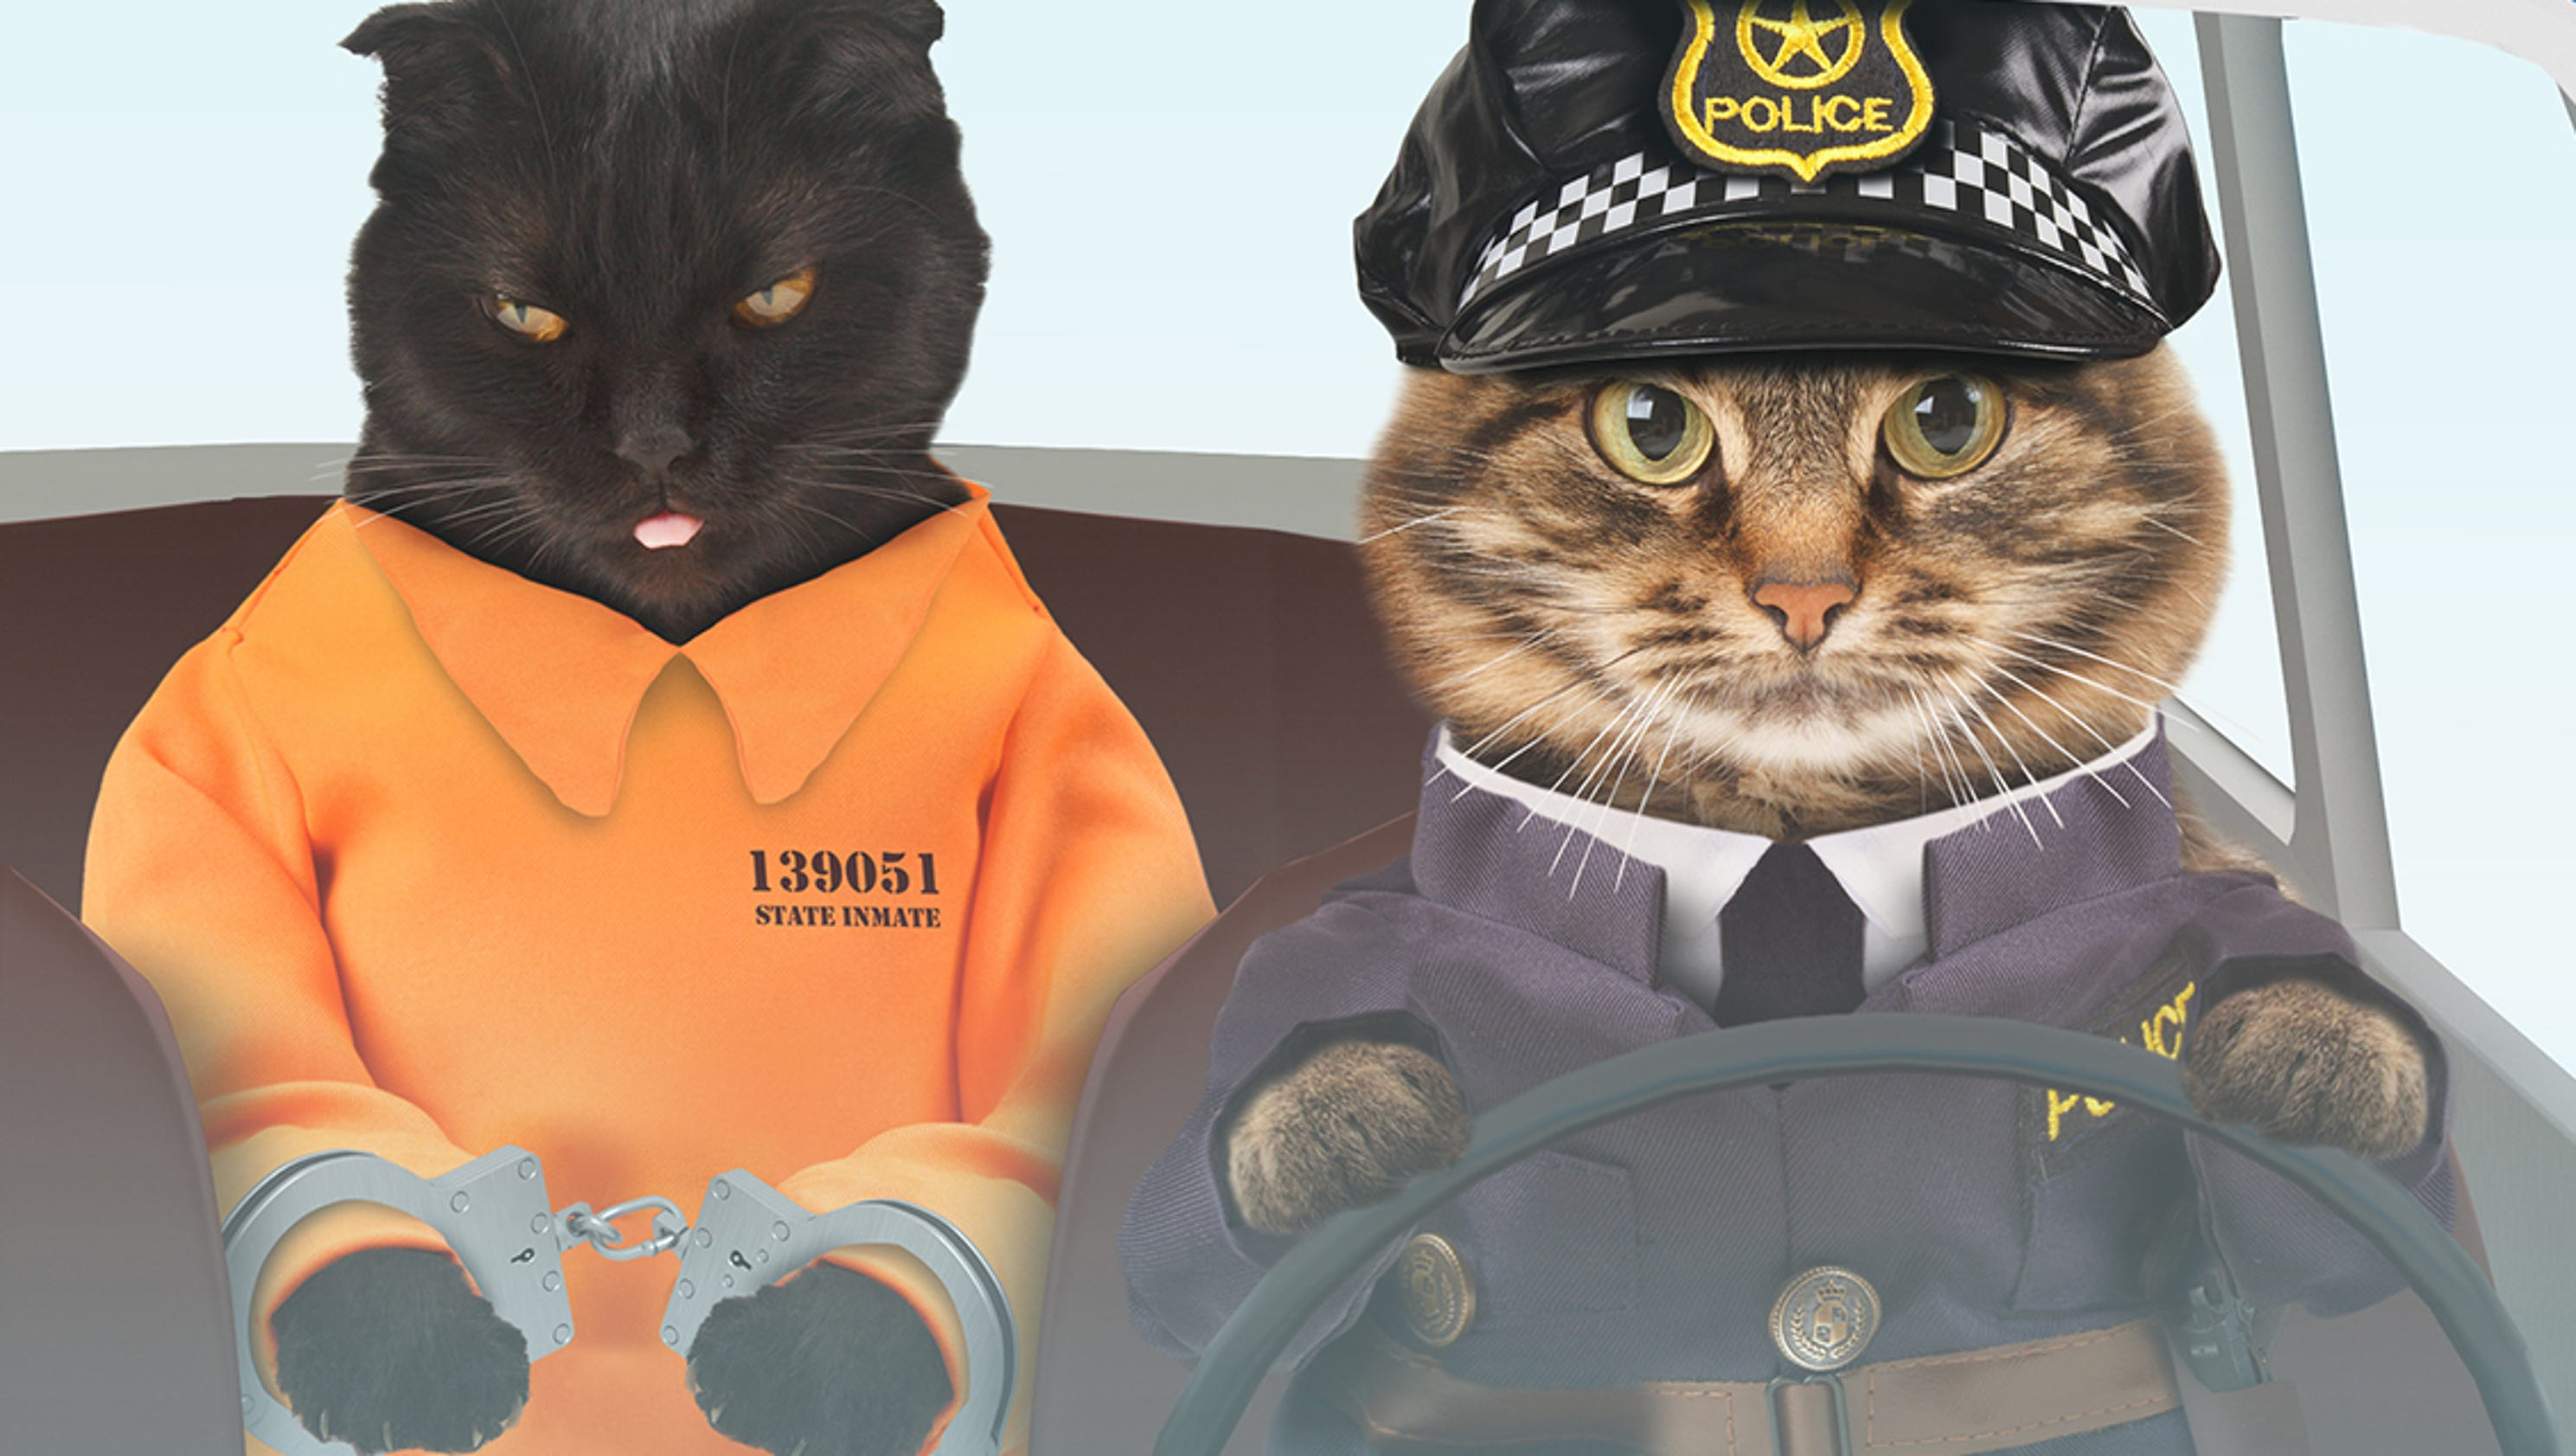 Police cat on way after Michigan department exceeds ...